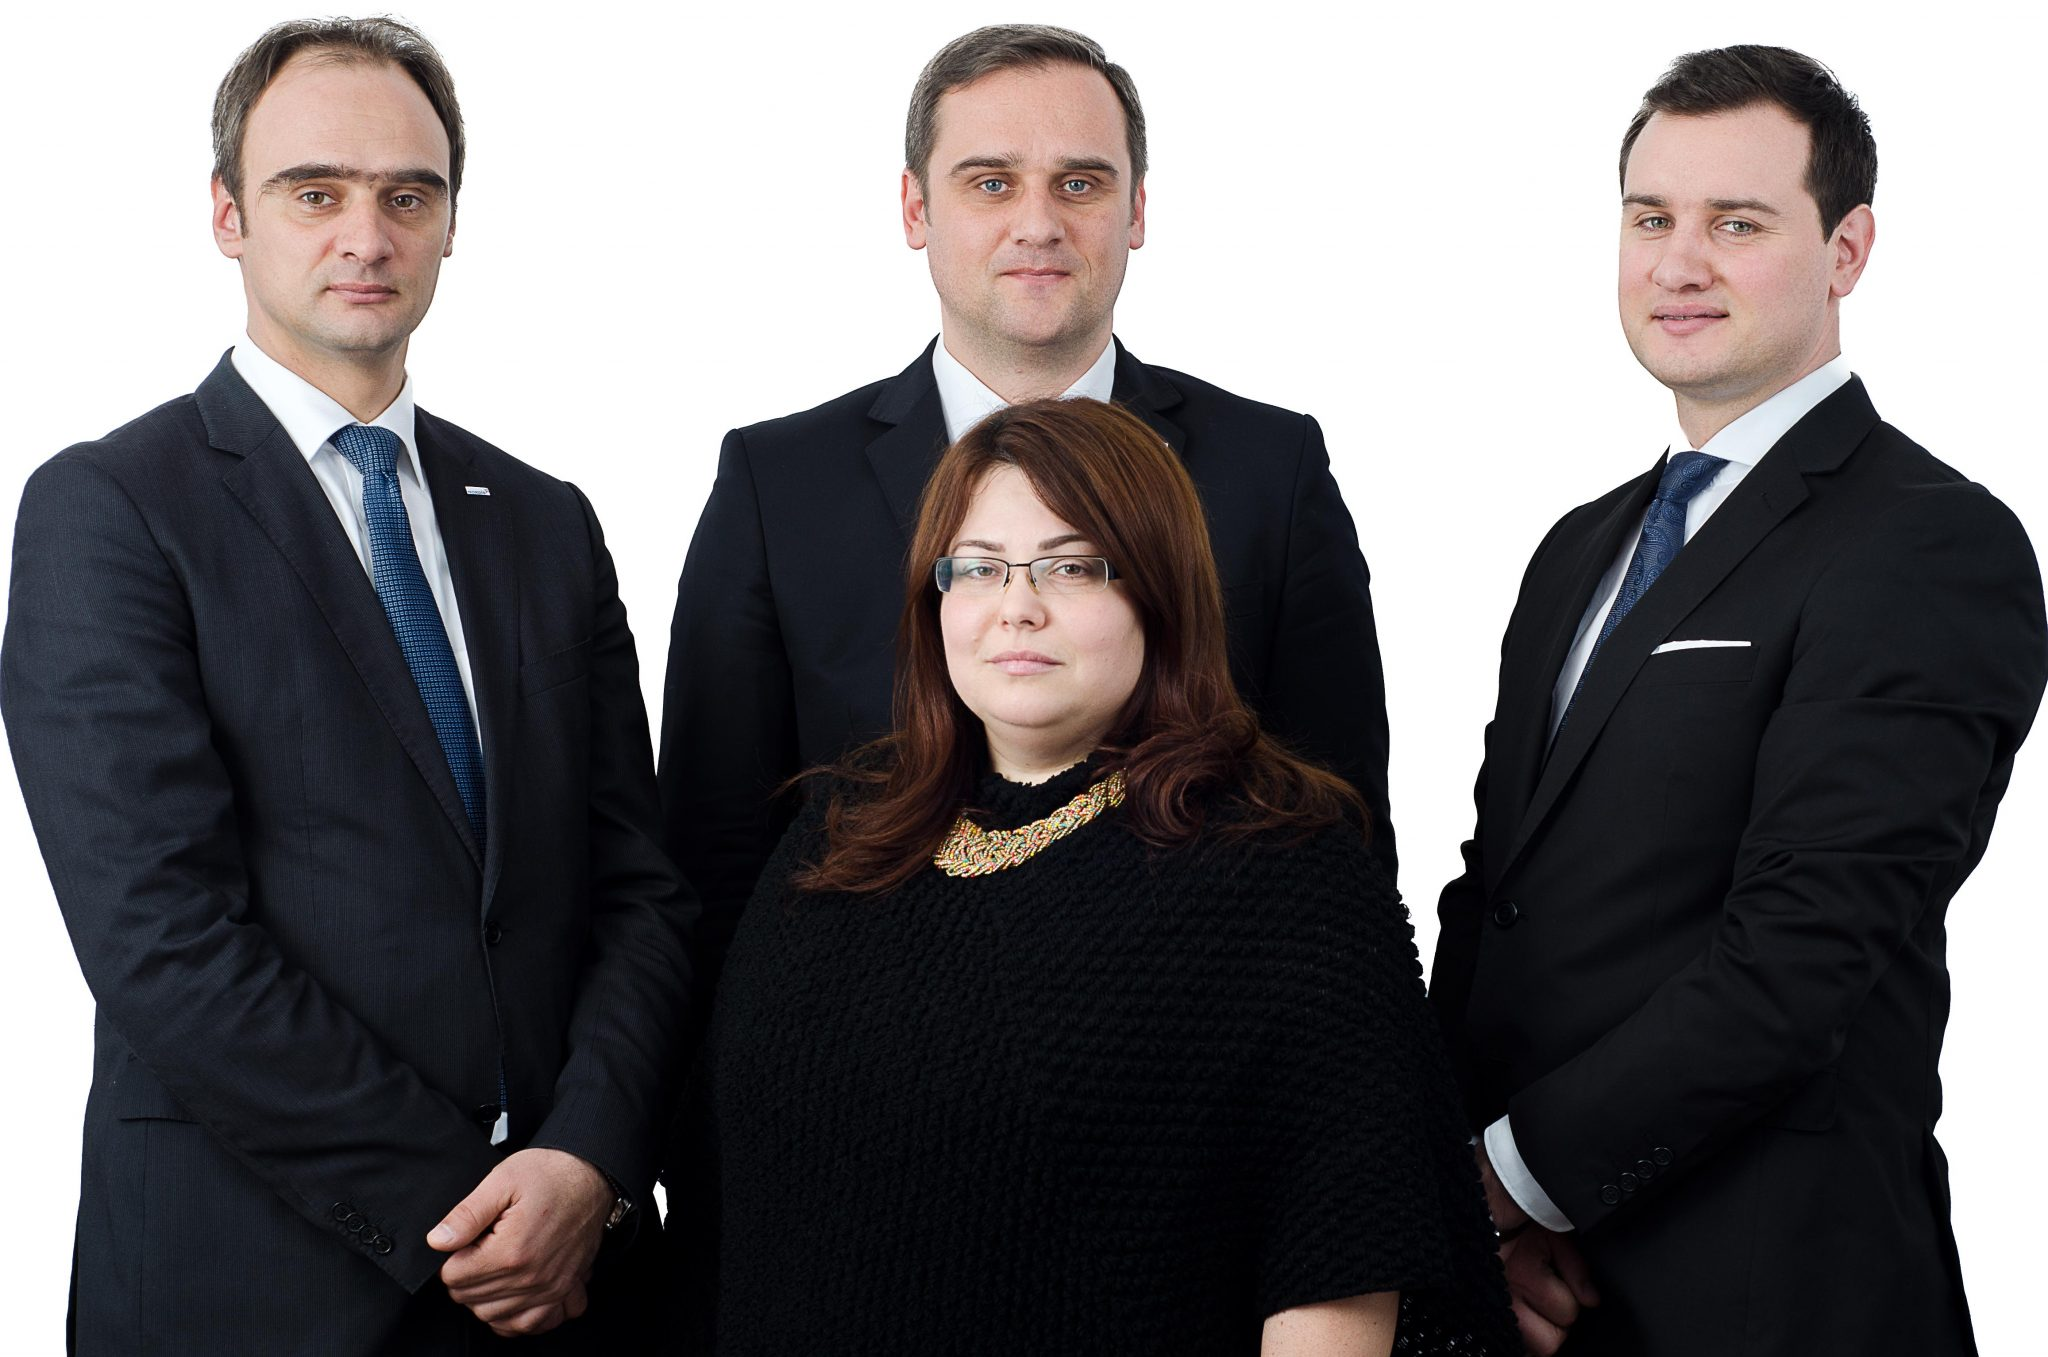 Corporate photographer Luxembourg